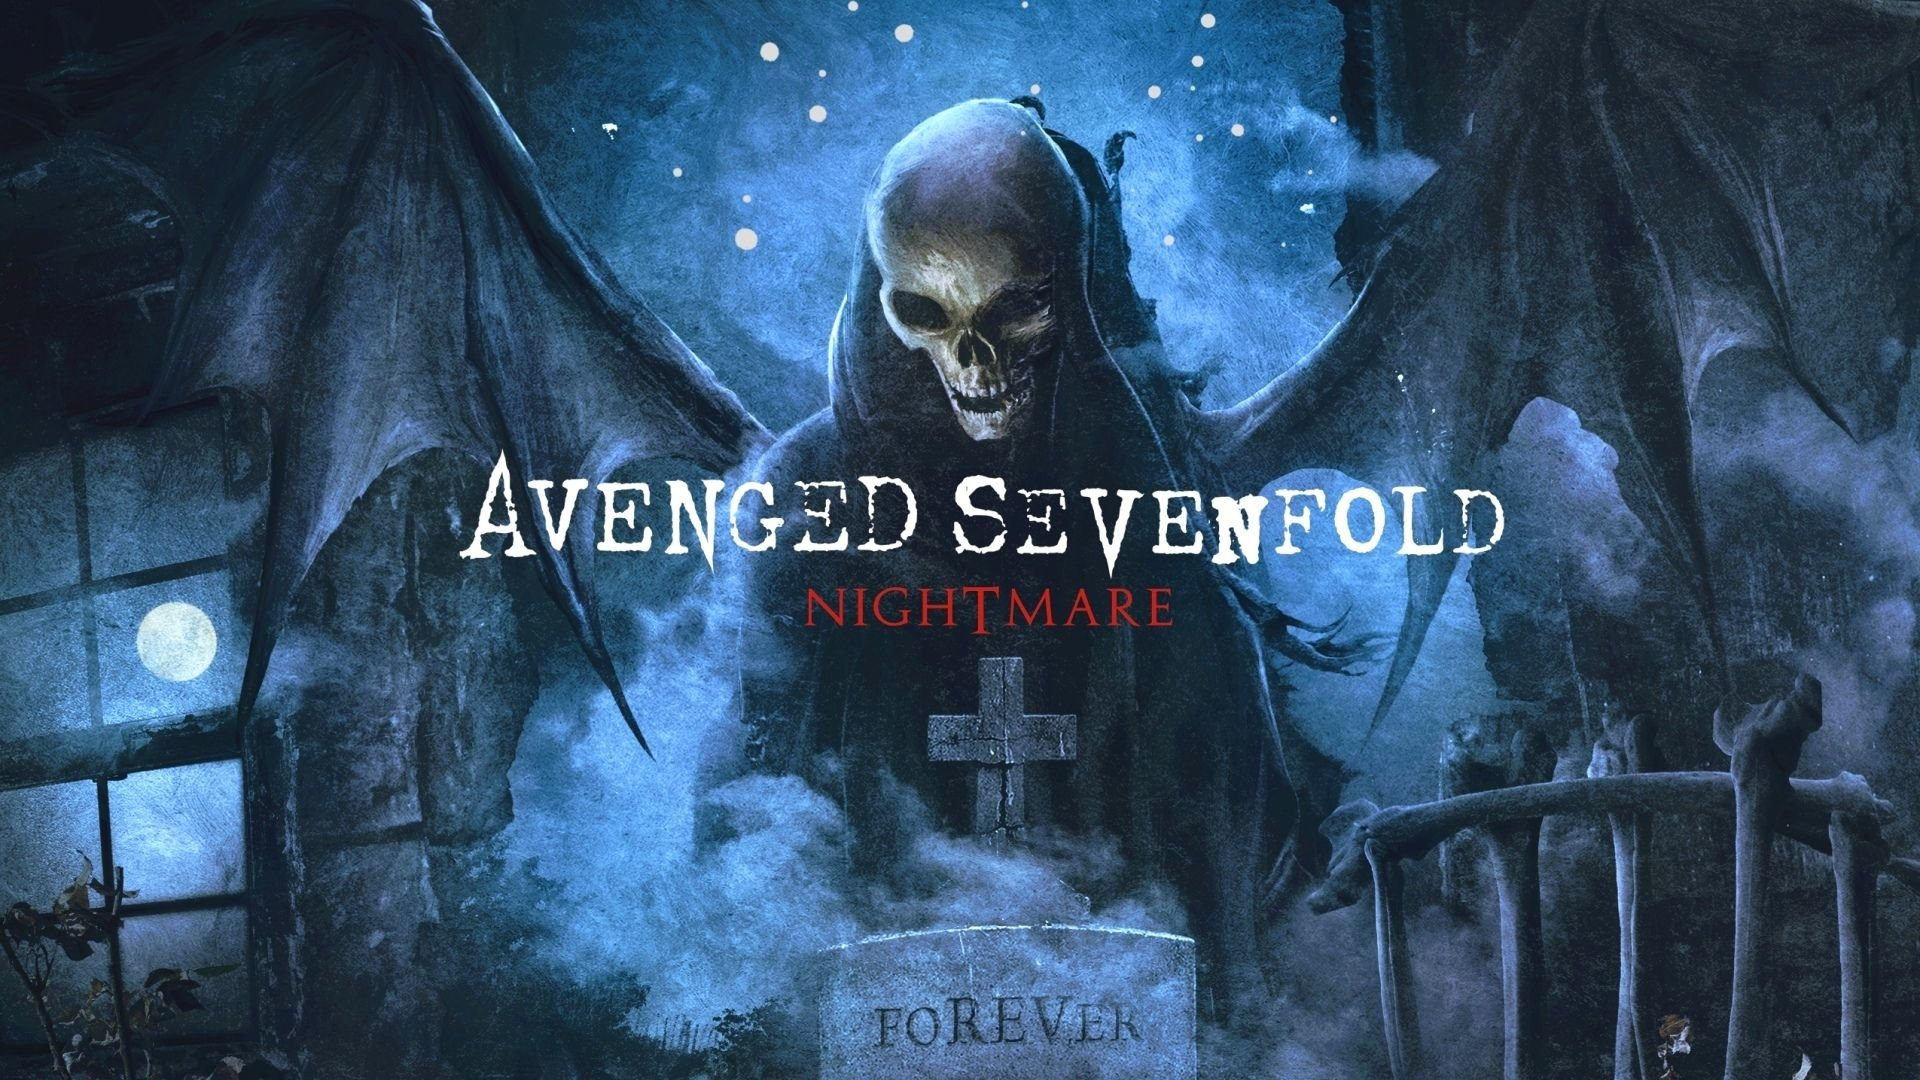 Avenged Sevenfold Nightmare Full HD Wallpaper And Background Image